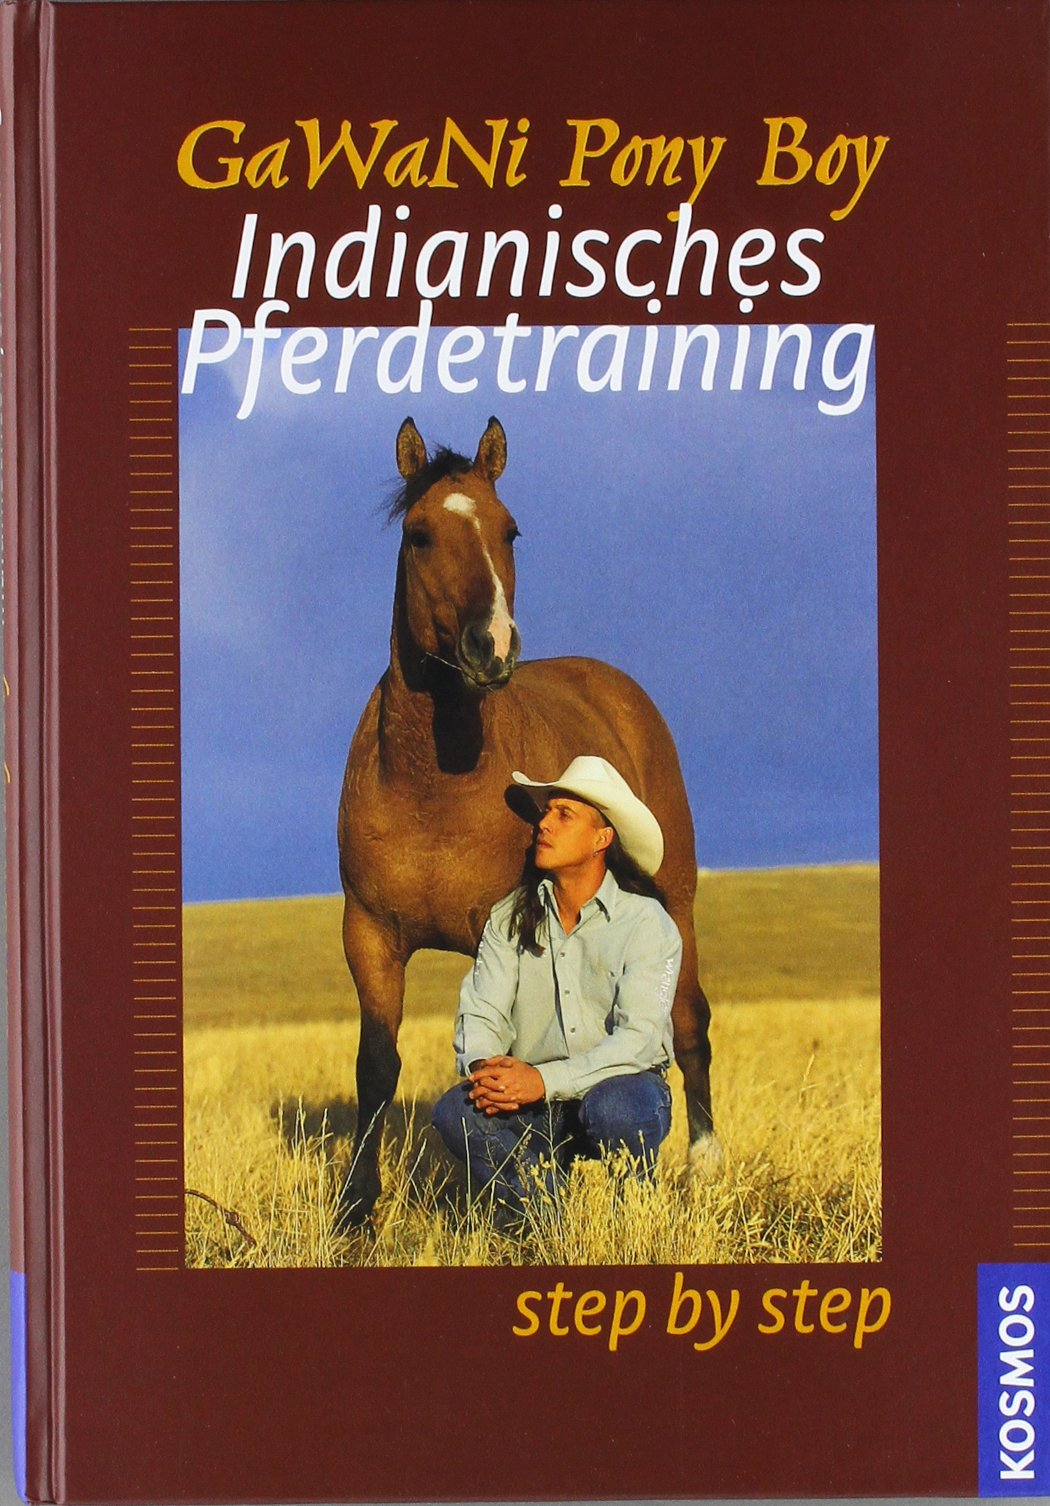 Indianisches Pferdetraining: Step by Step